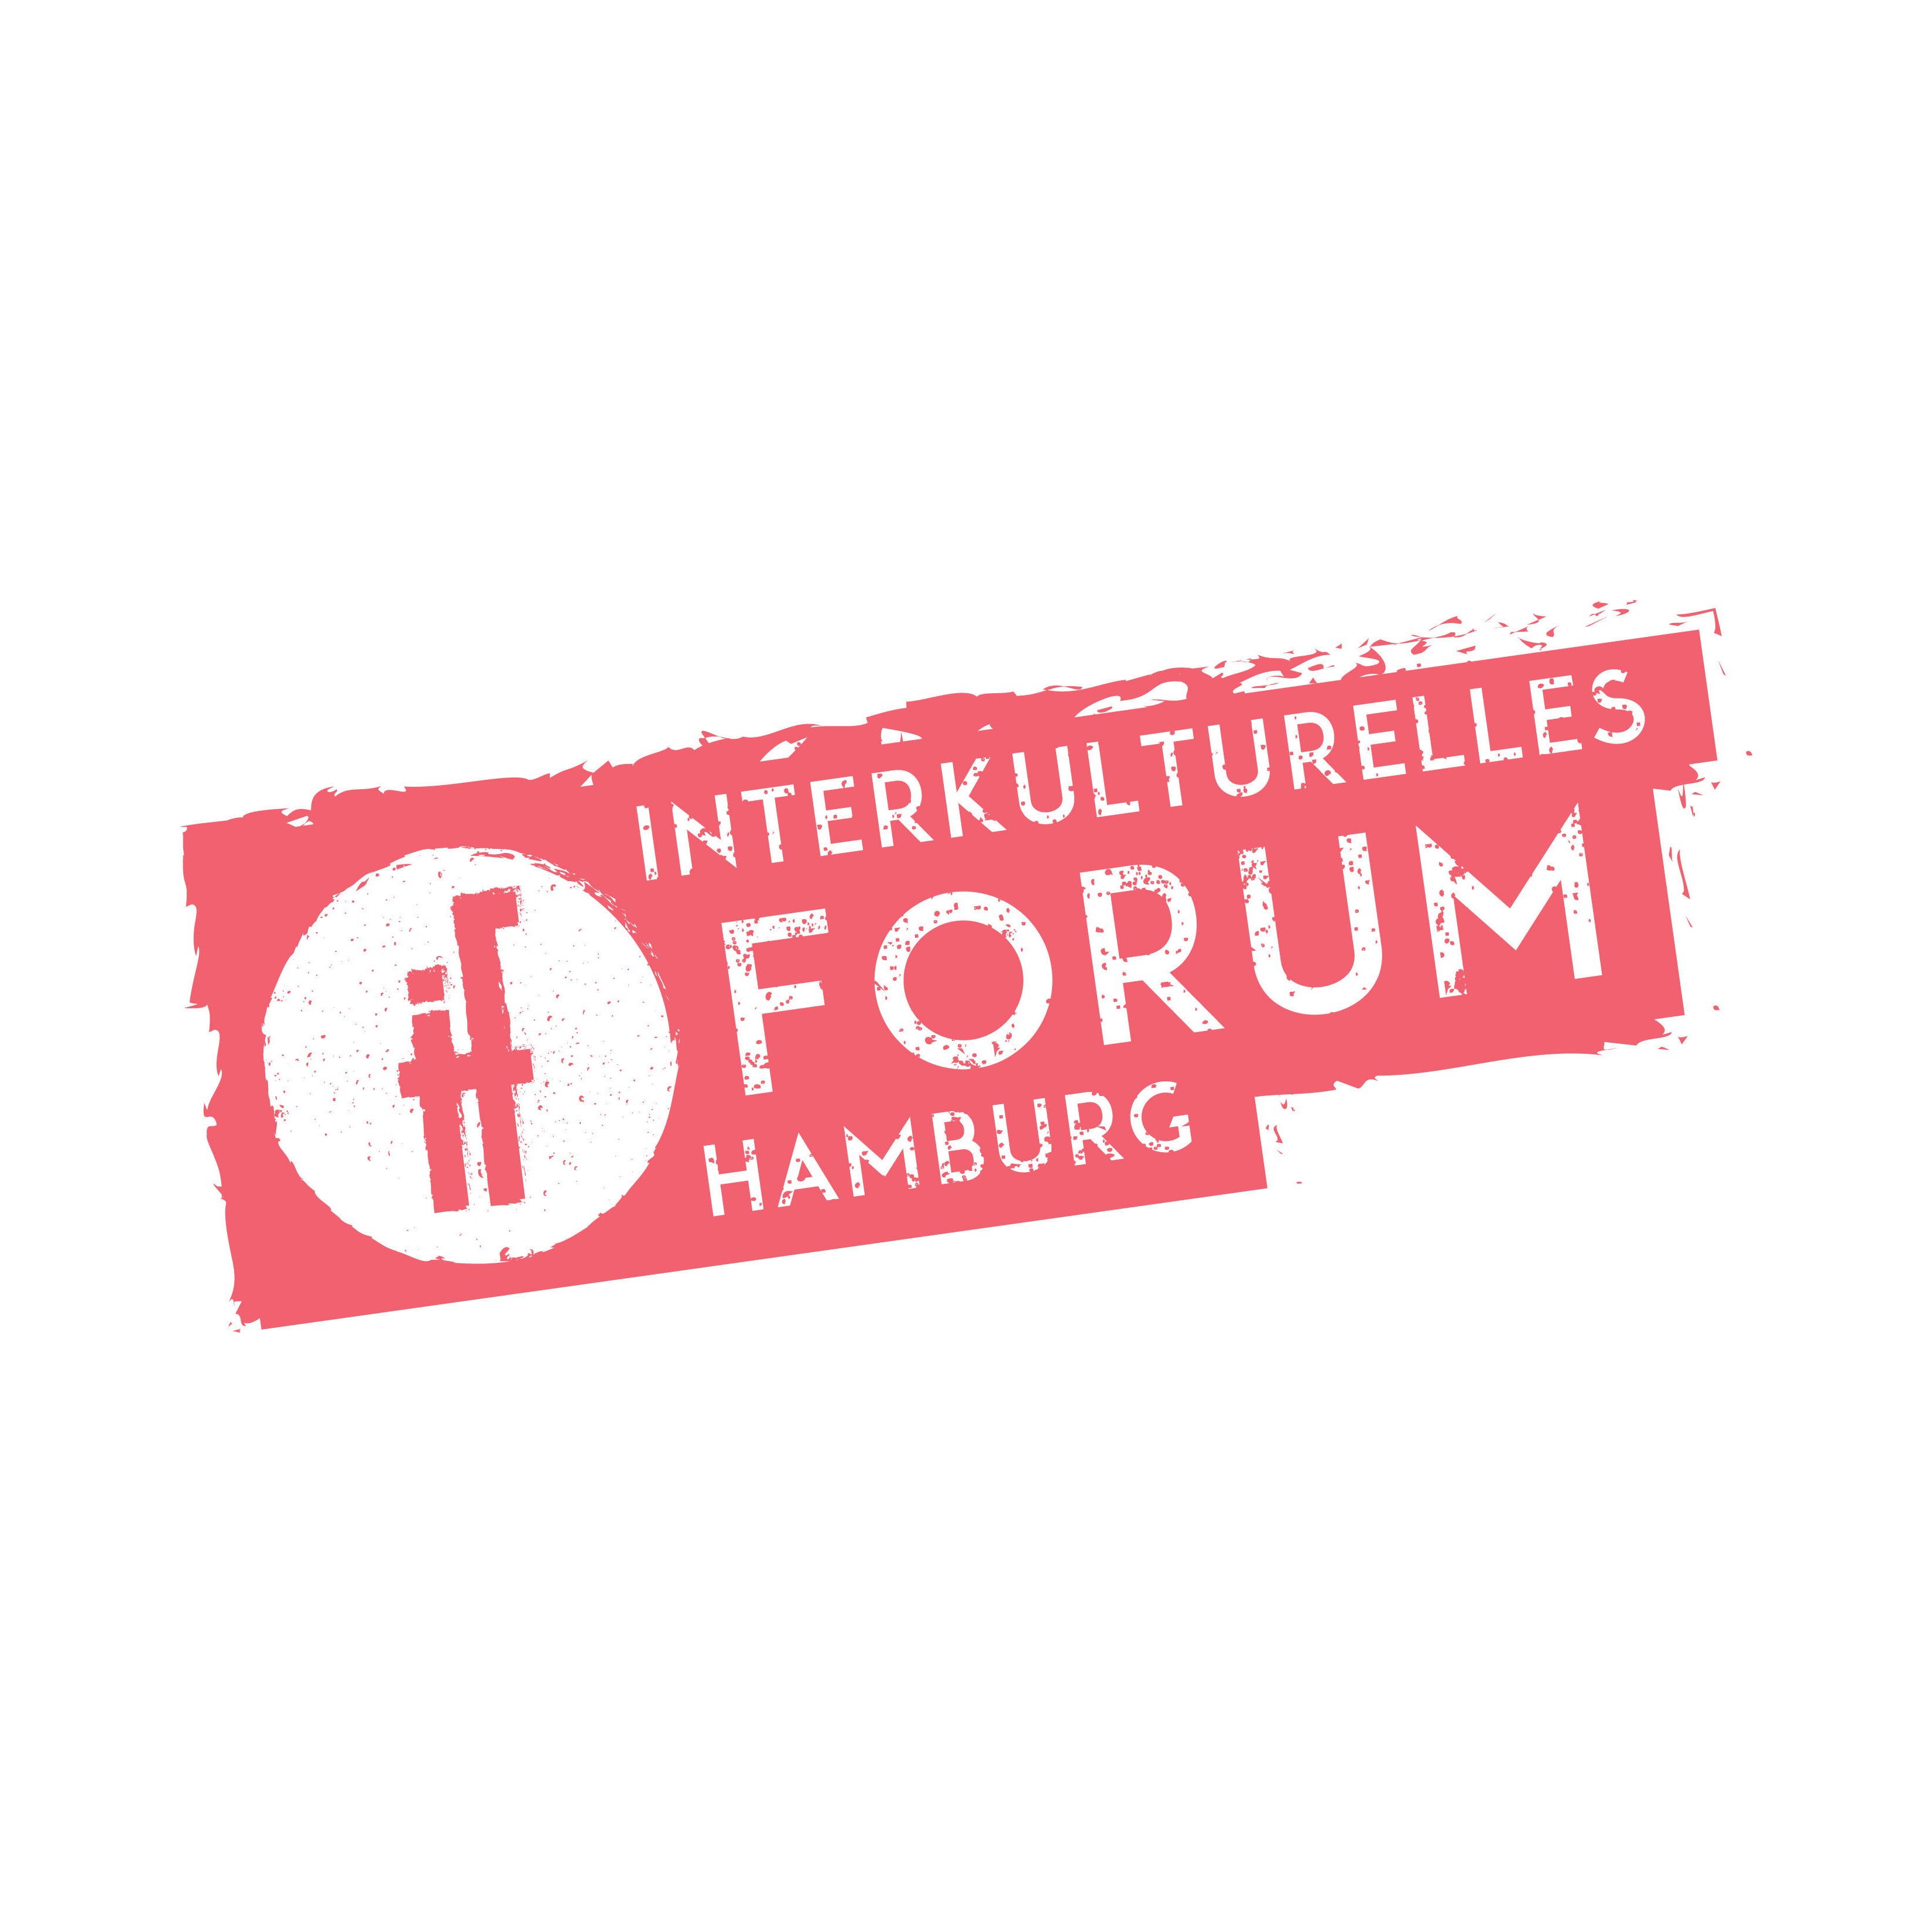 Interkulturelles Forum